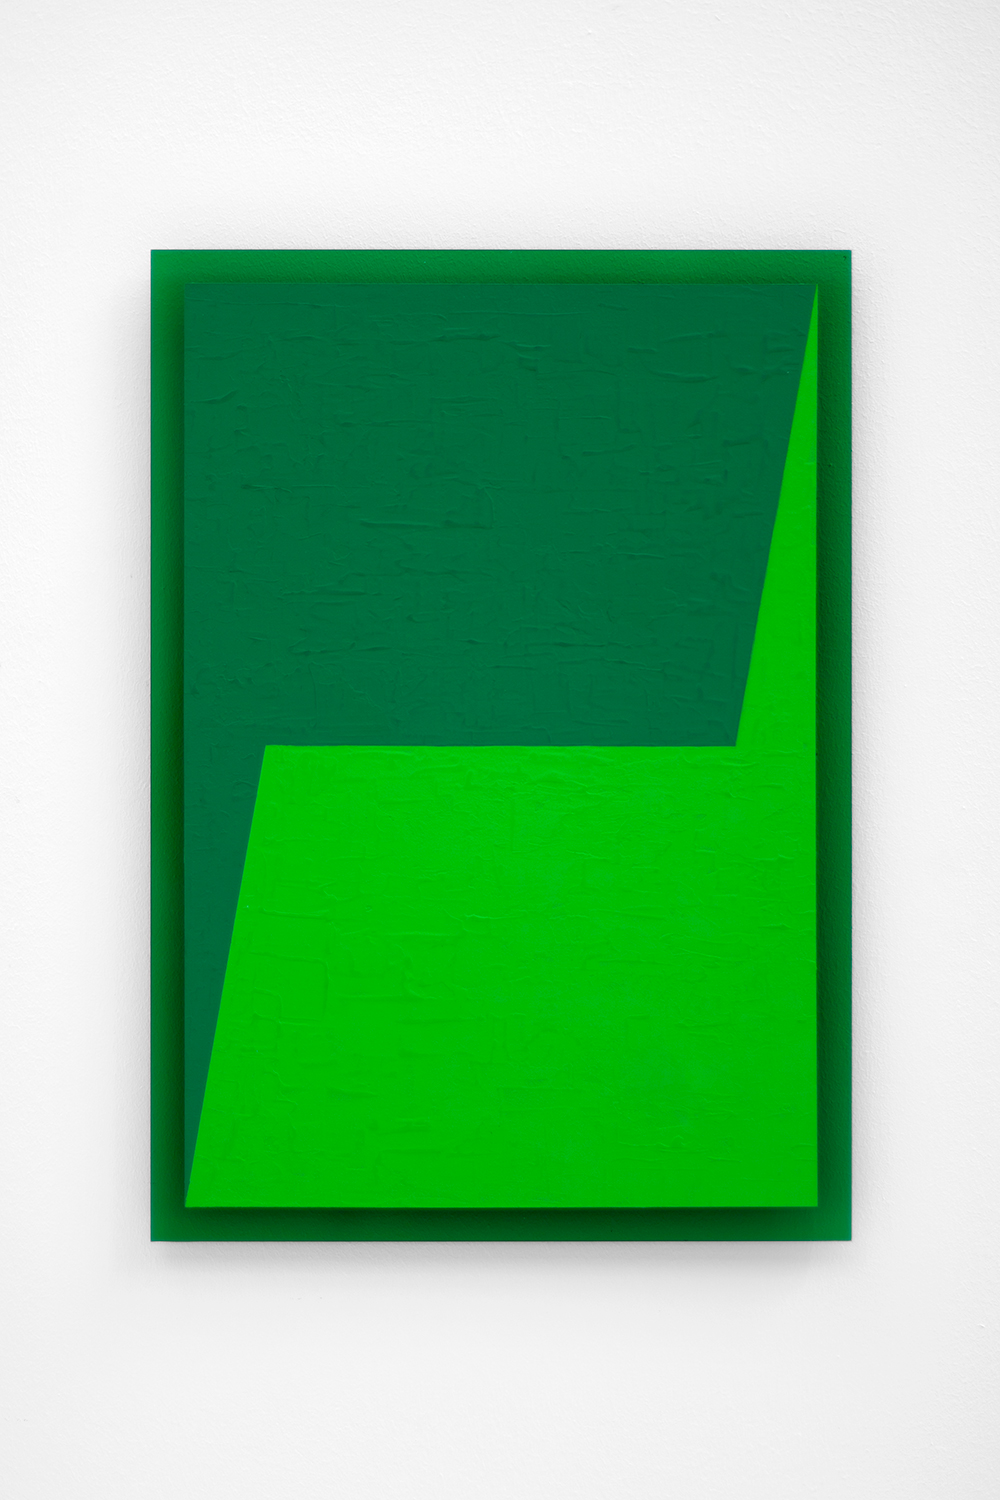 The Green Series nr. 11 42 x 29,7 cm ( A3 Size ) Vinylpaint on green perspex